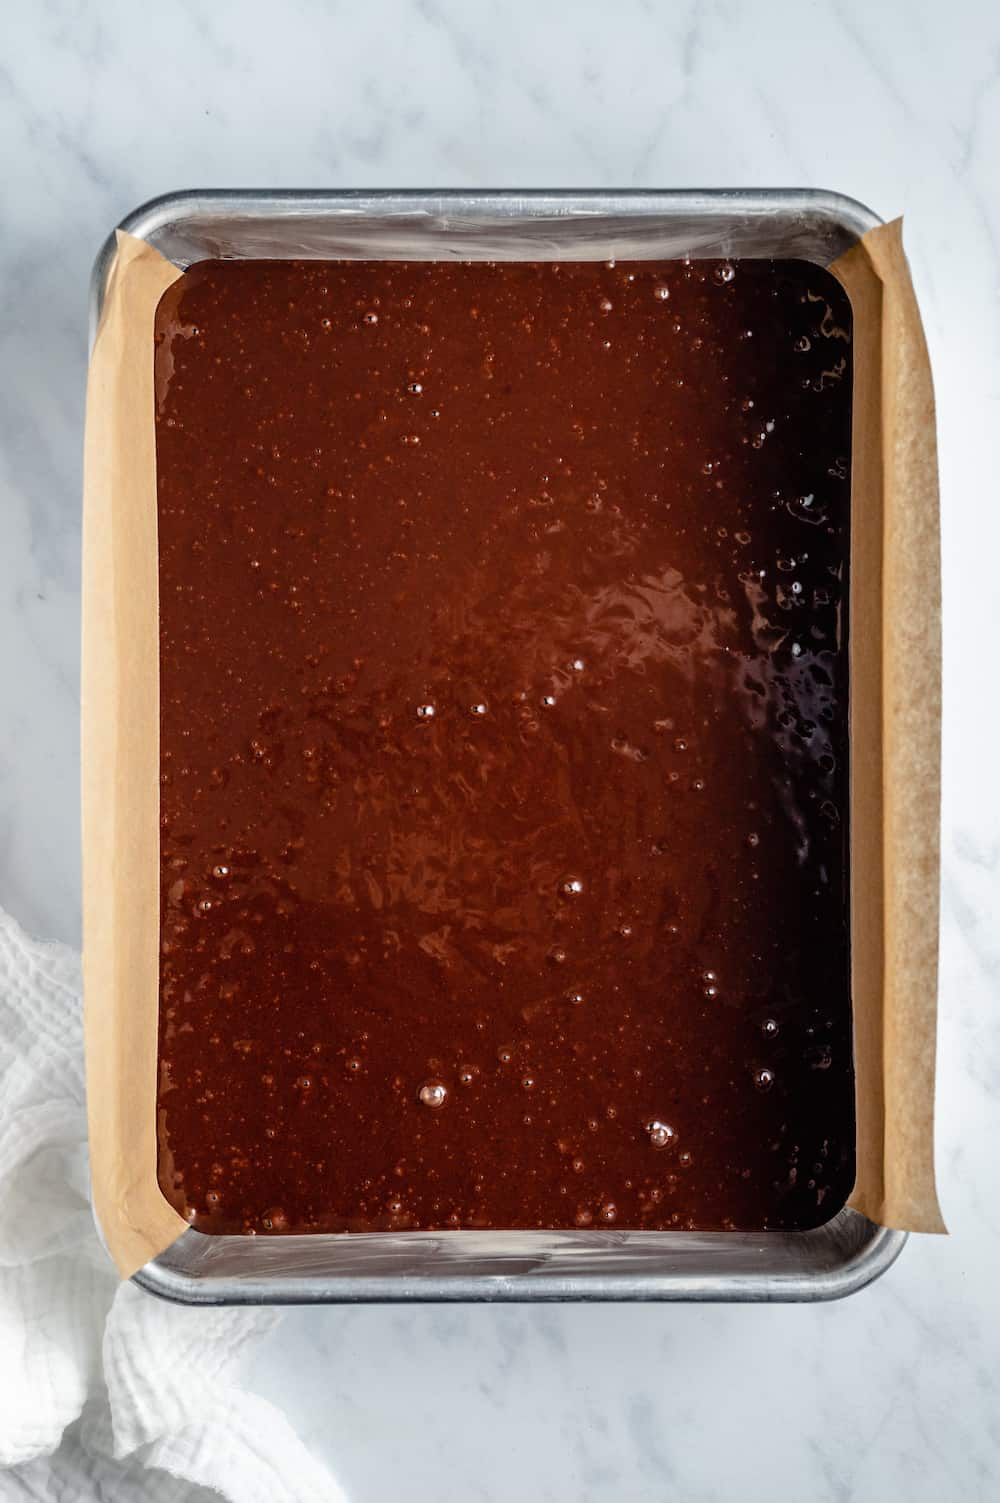 Chocolate cake batter in a sheet pan.